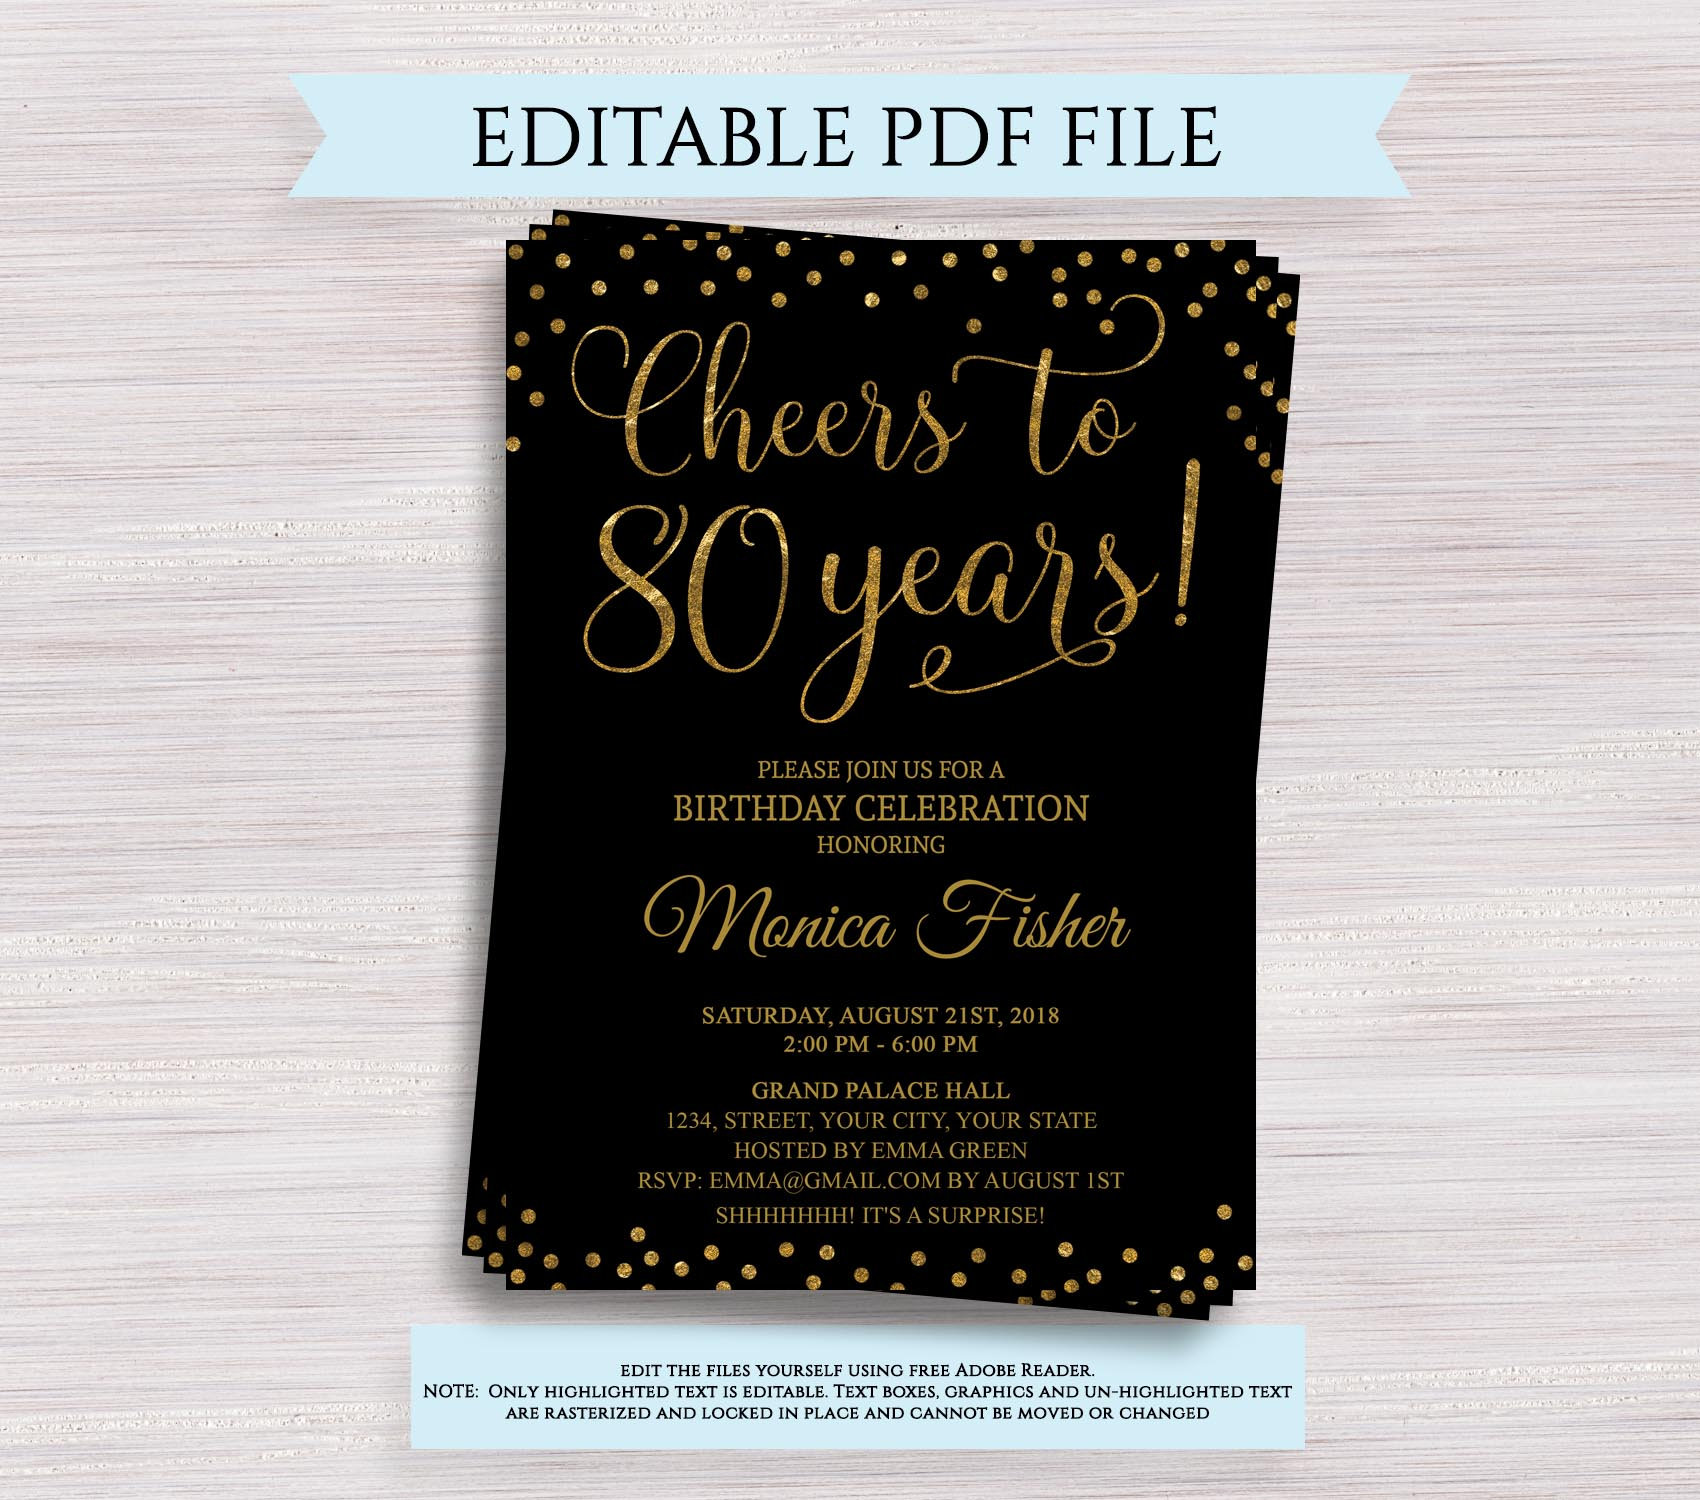 Cheers To 80 Years Editable 80th Birthday Party Invitation